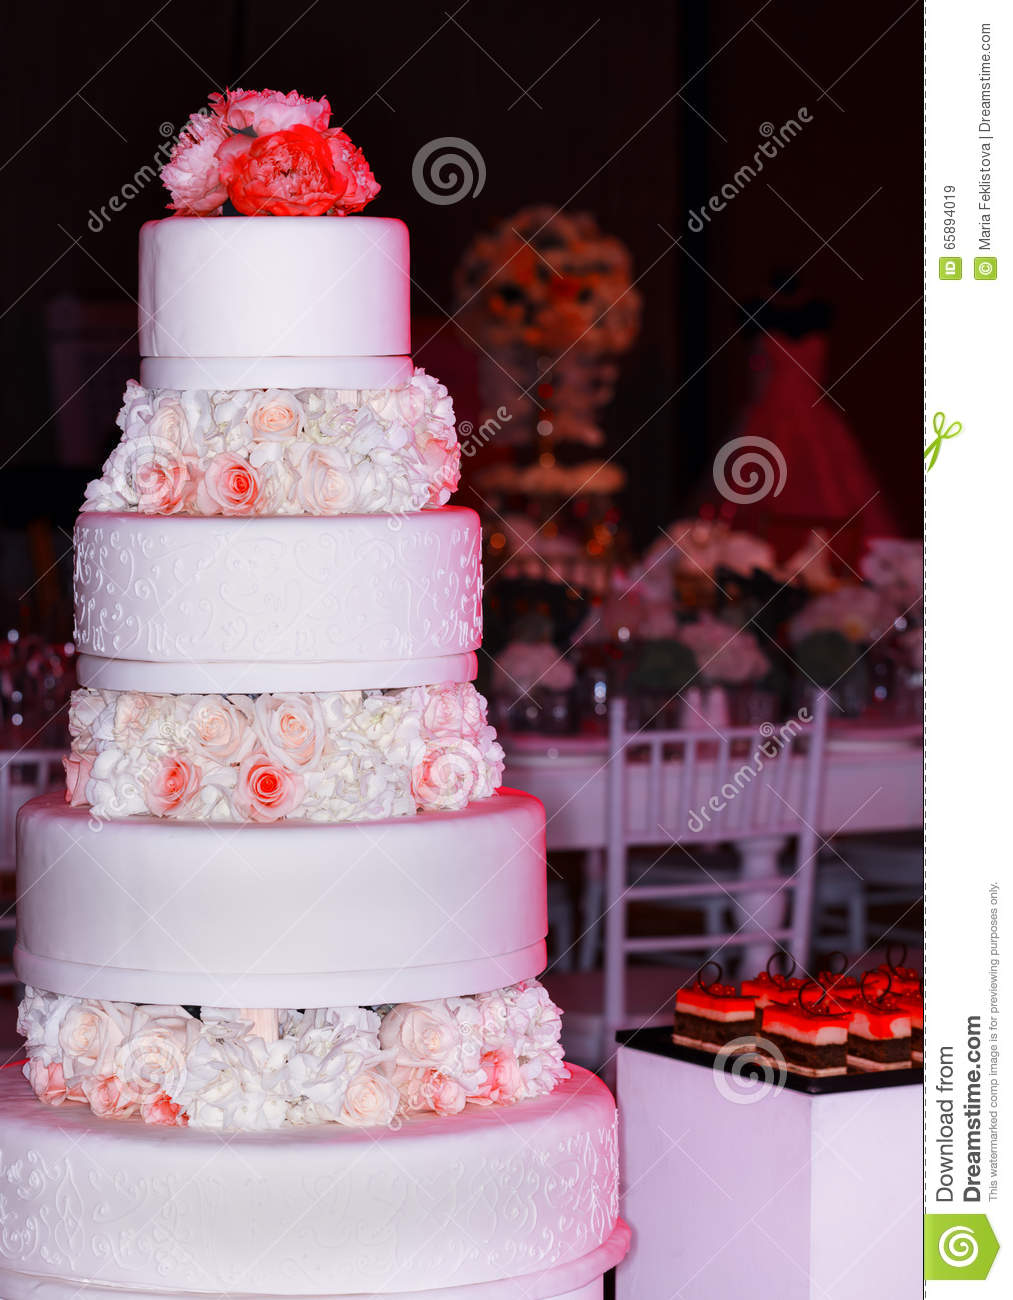 Wedding tier cake decorated with roses